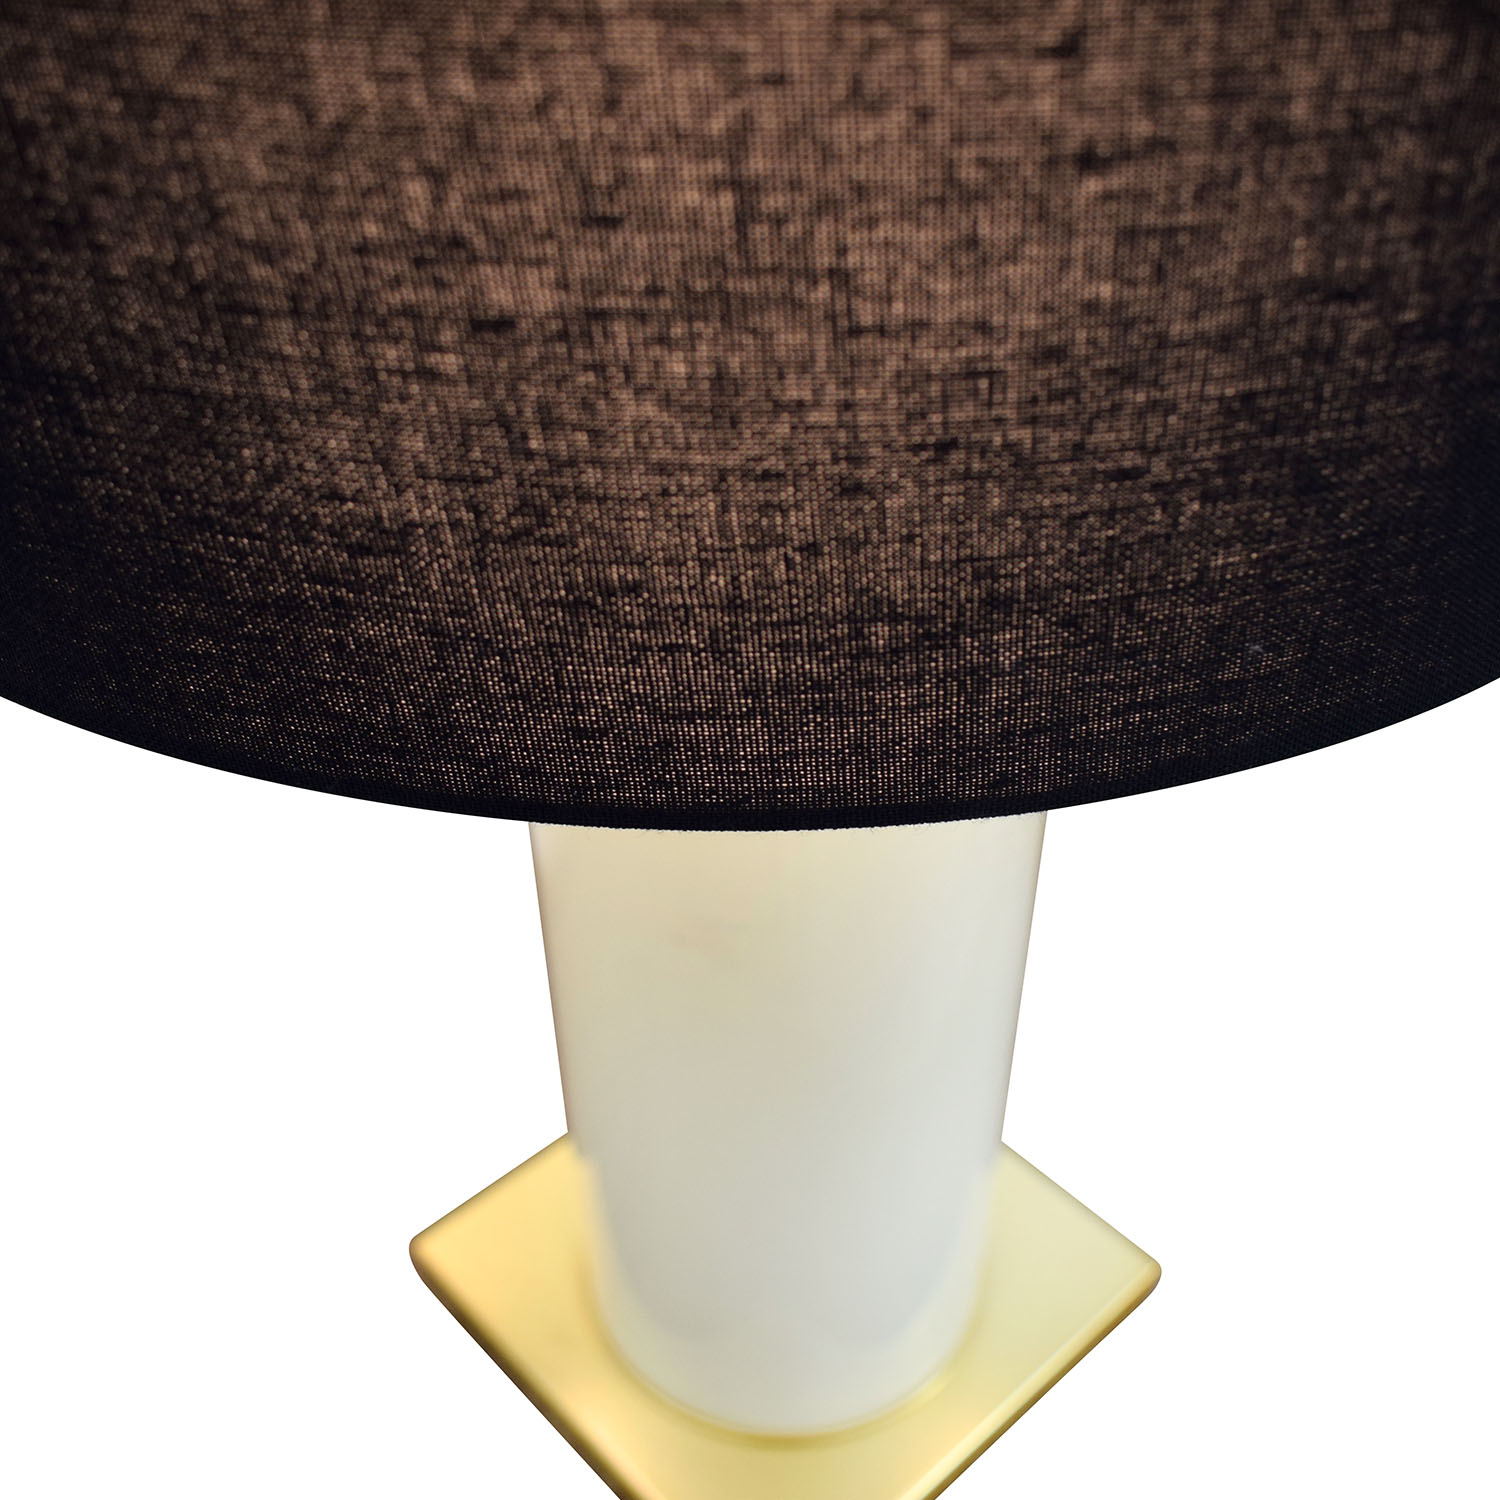 Kate Spade Black Gold and Creme Table Lamp / Decor